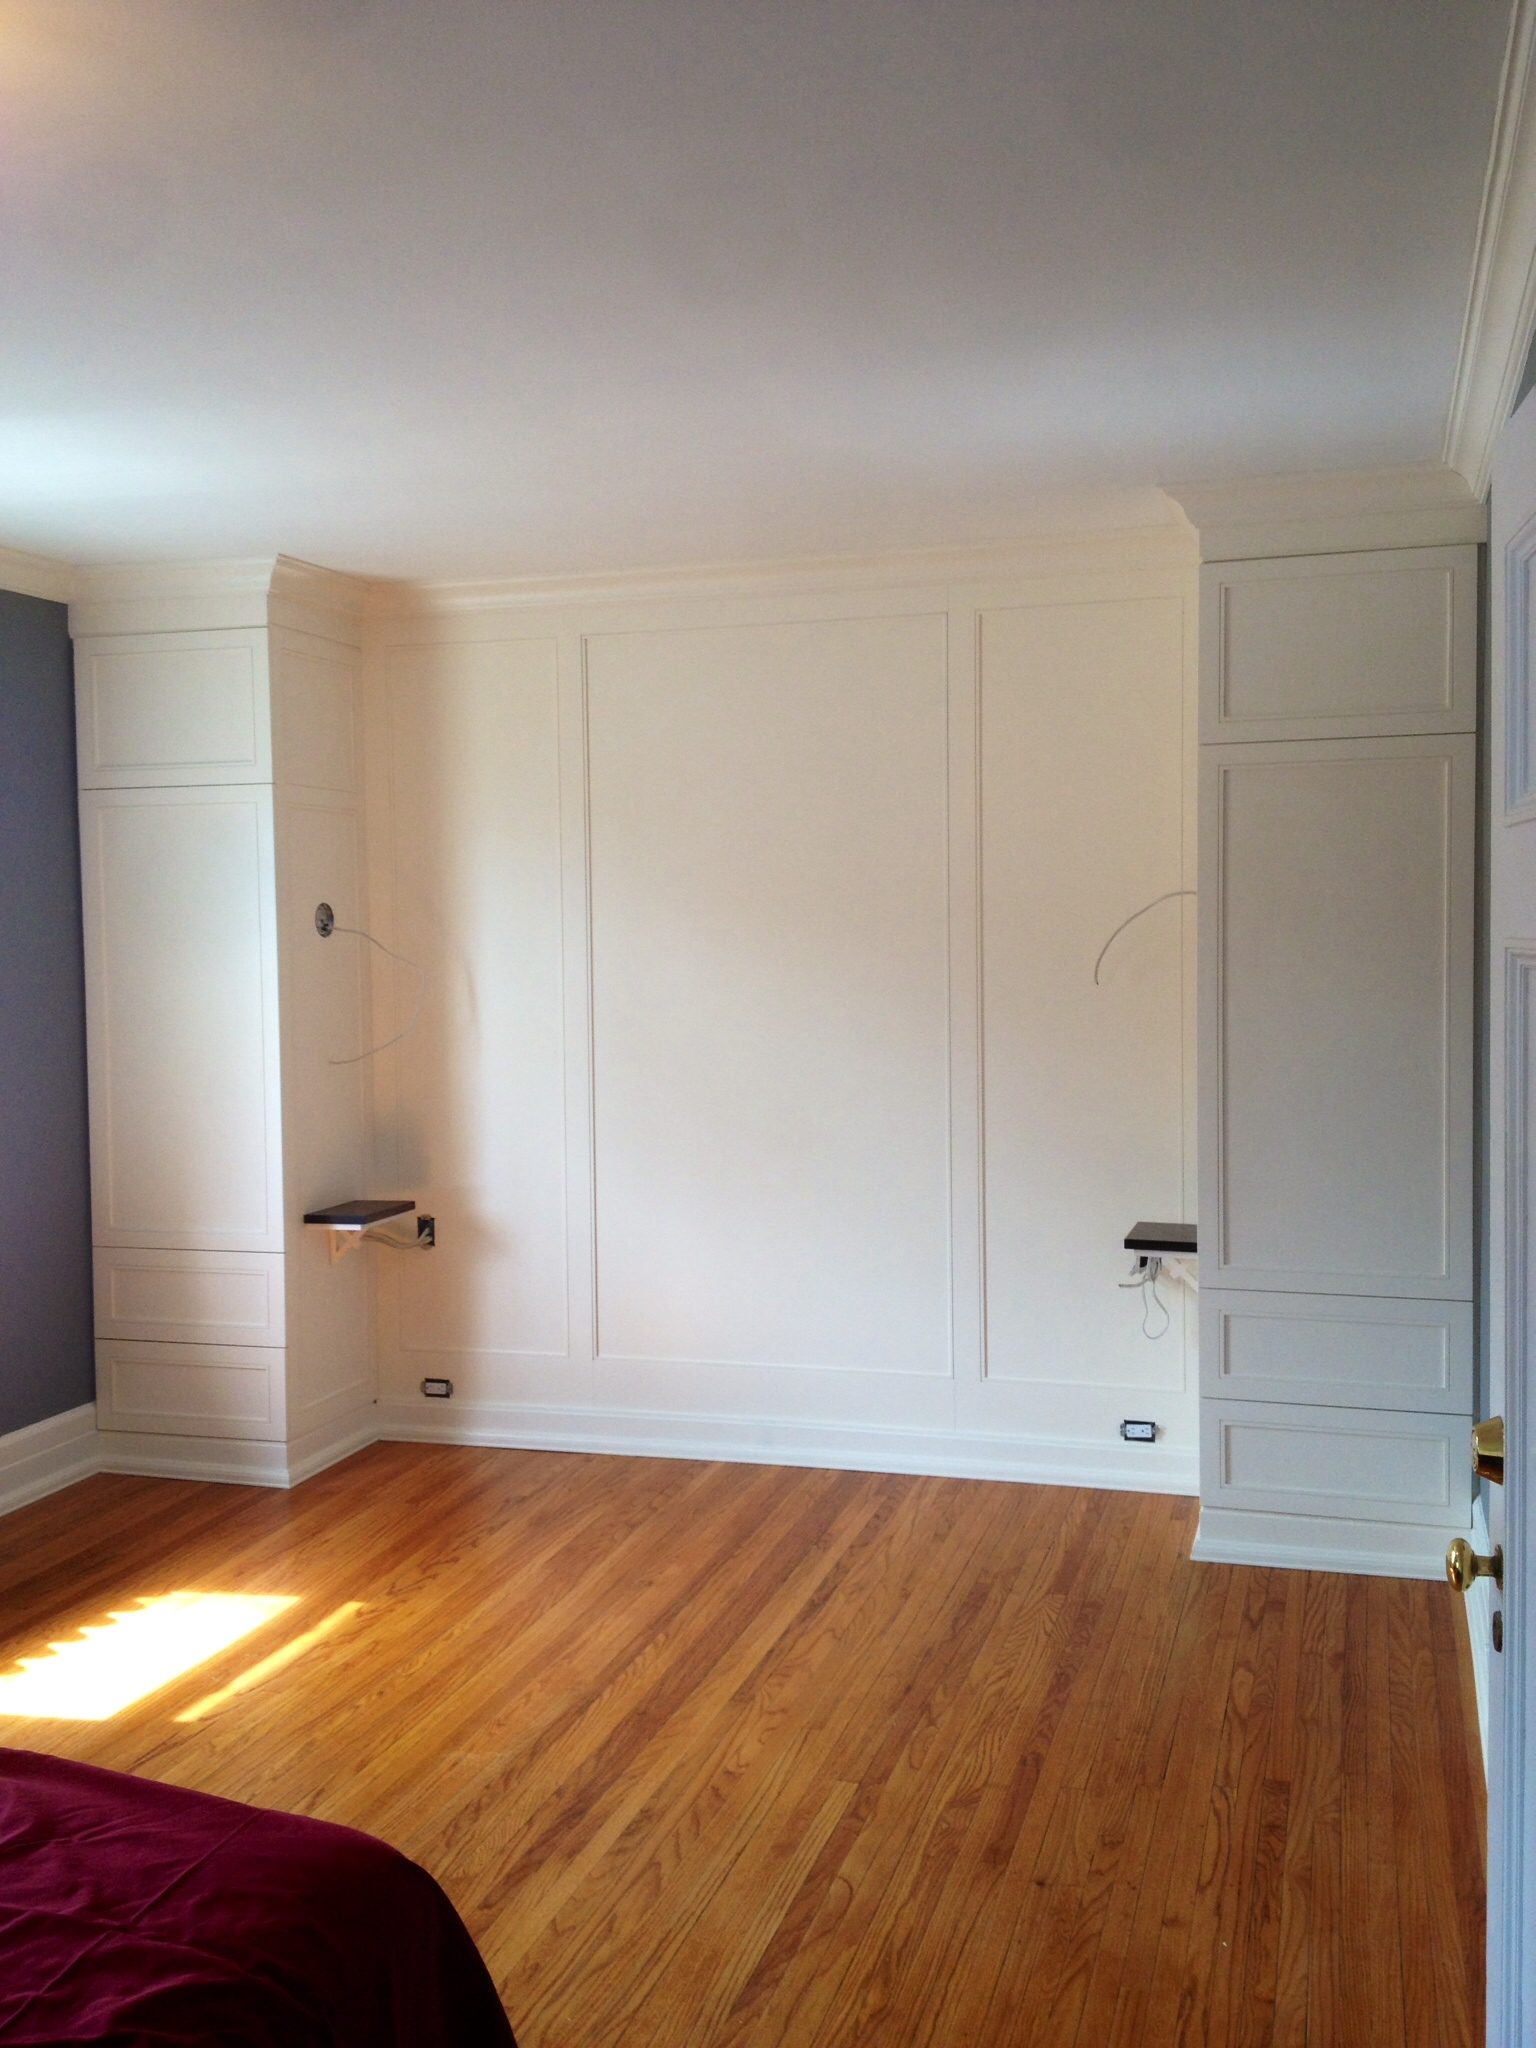 Wall unit / closet space for bedroom